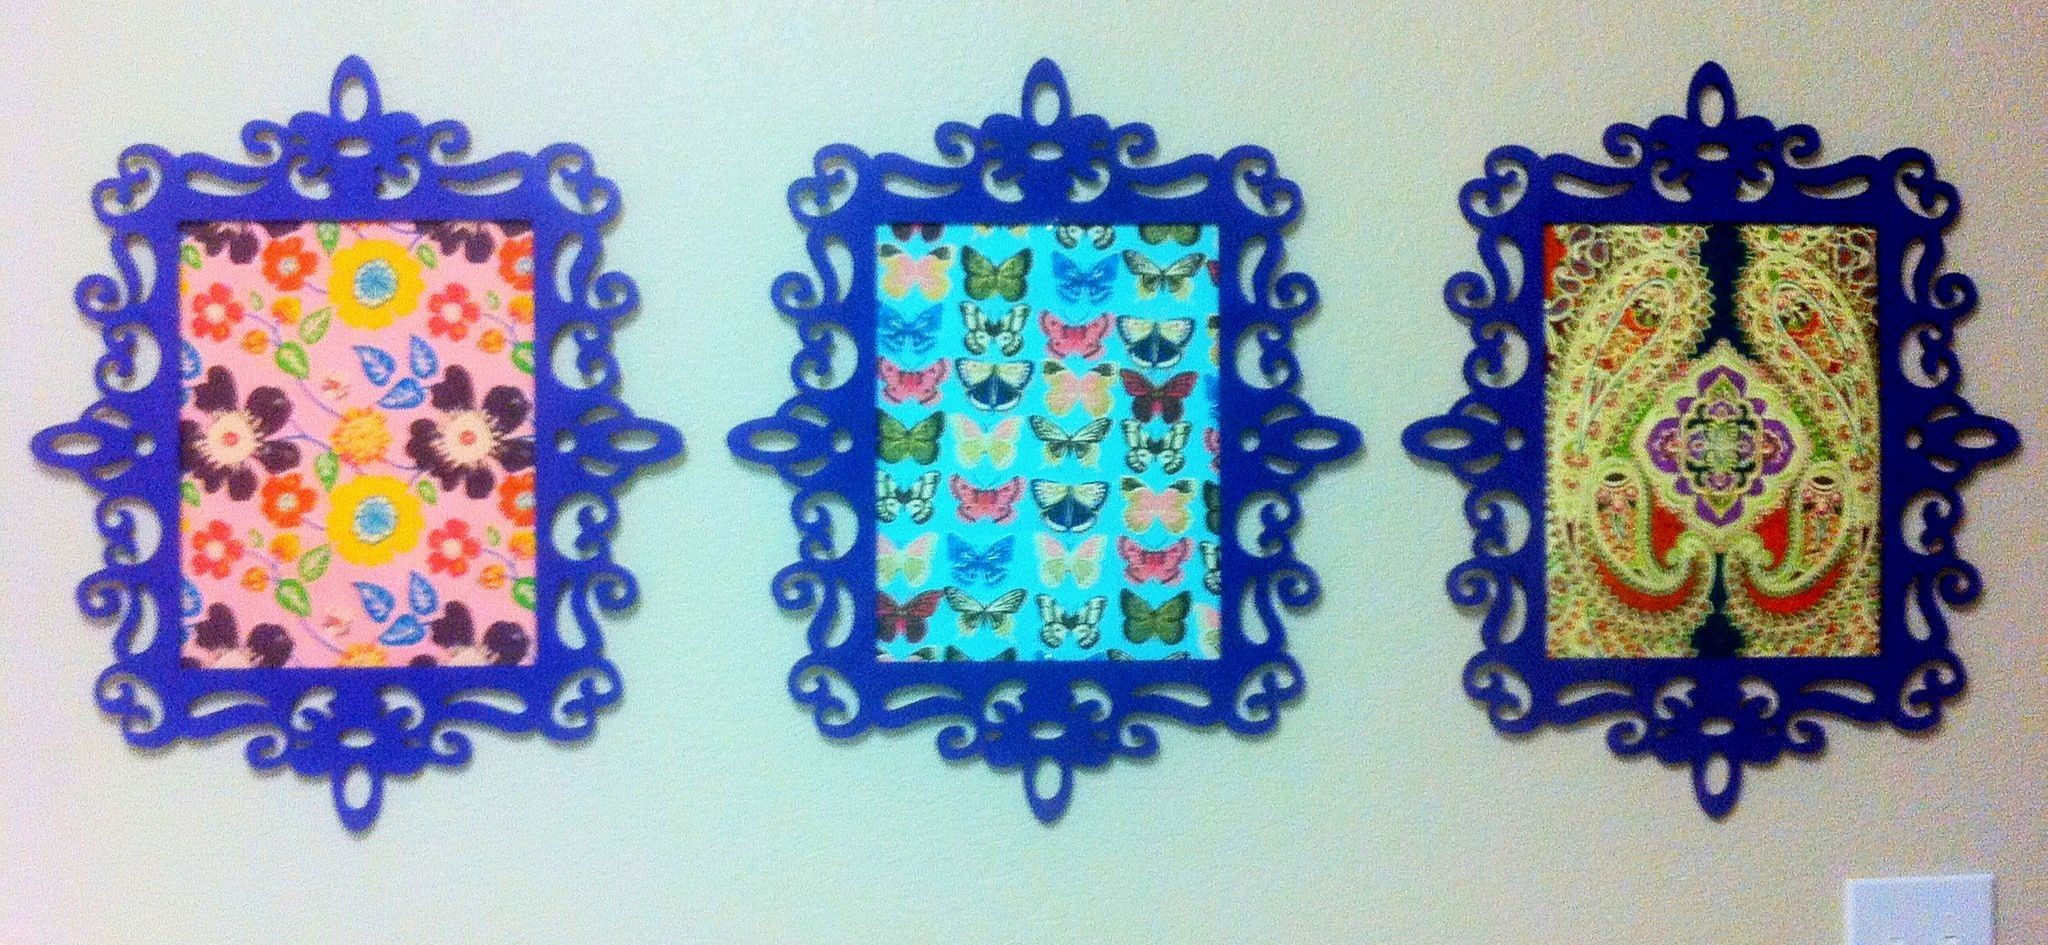 Laser-cut wood frames from Michaels (spray painted) with pretty gift ...